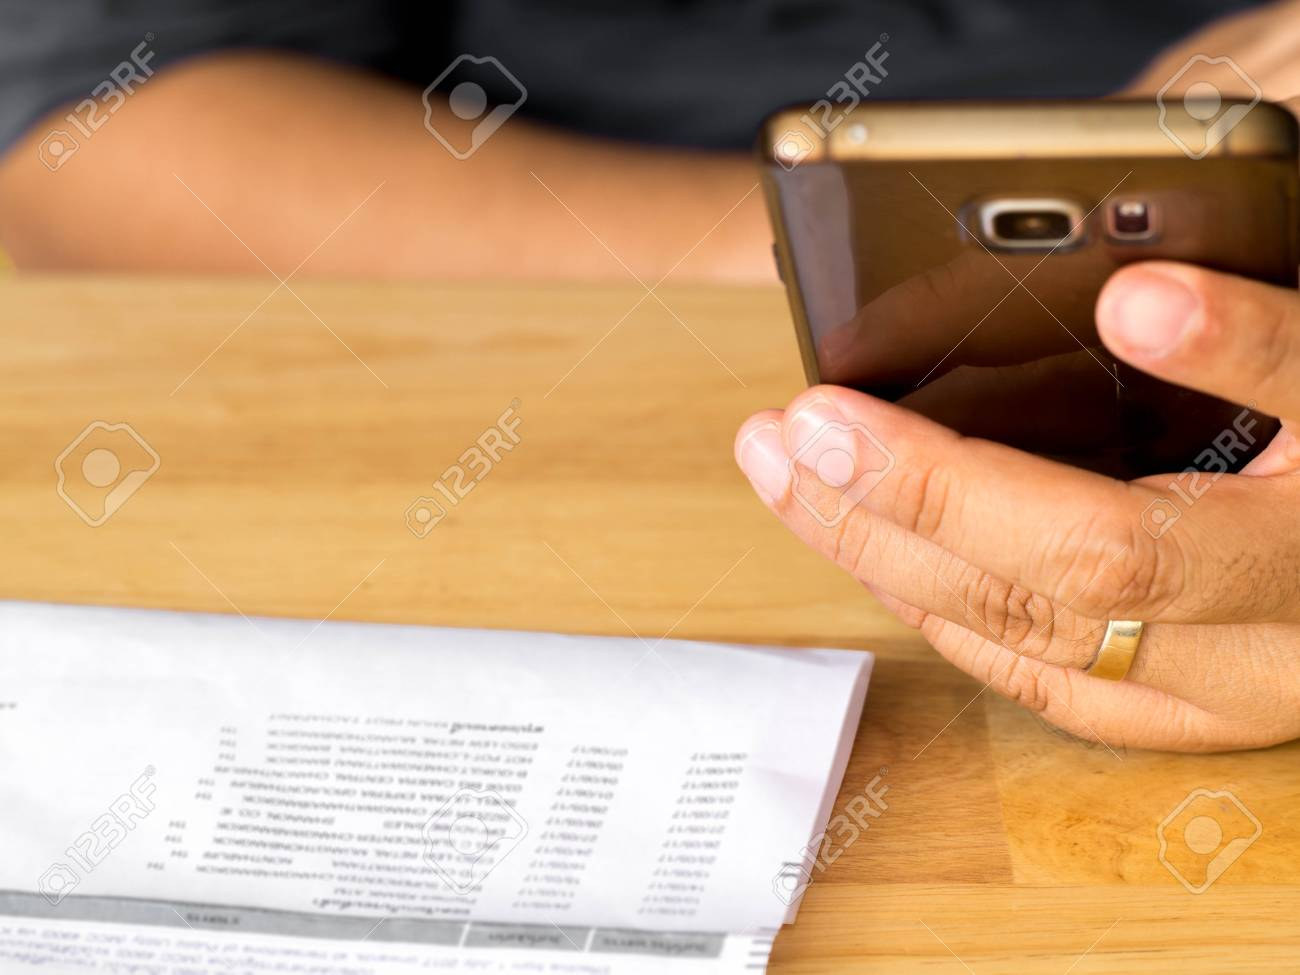 A Man Holding Smart Phone For Using Online Banking App For Paying Credit  Card Bill.